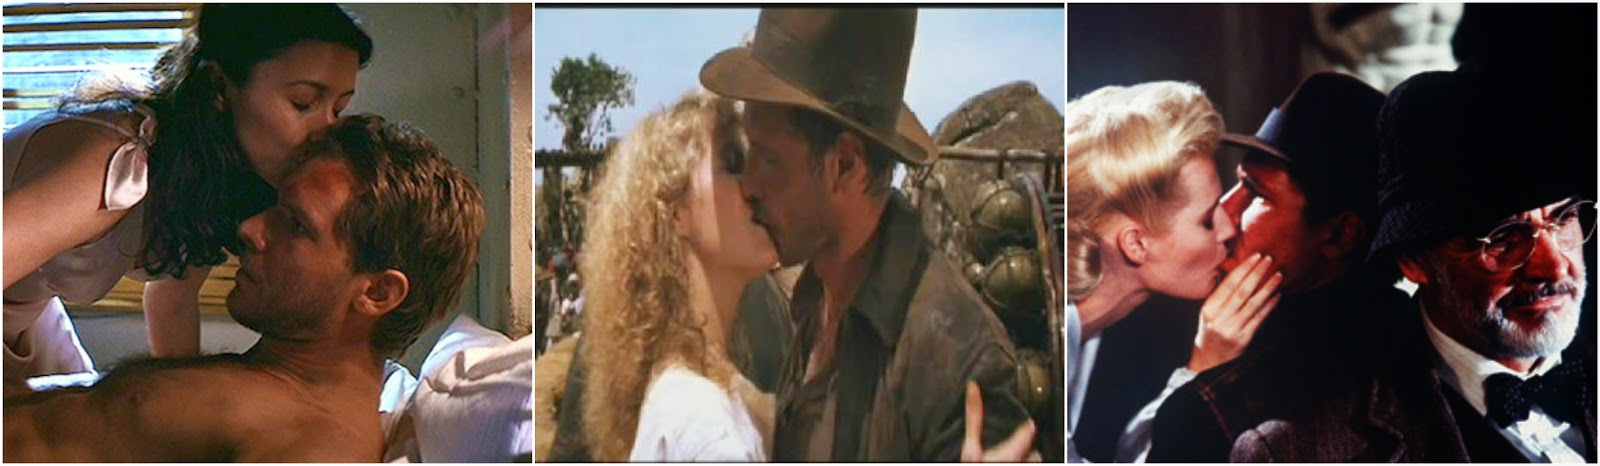 Indiana Jones y sus chicas en #sofapelimanta